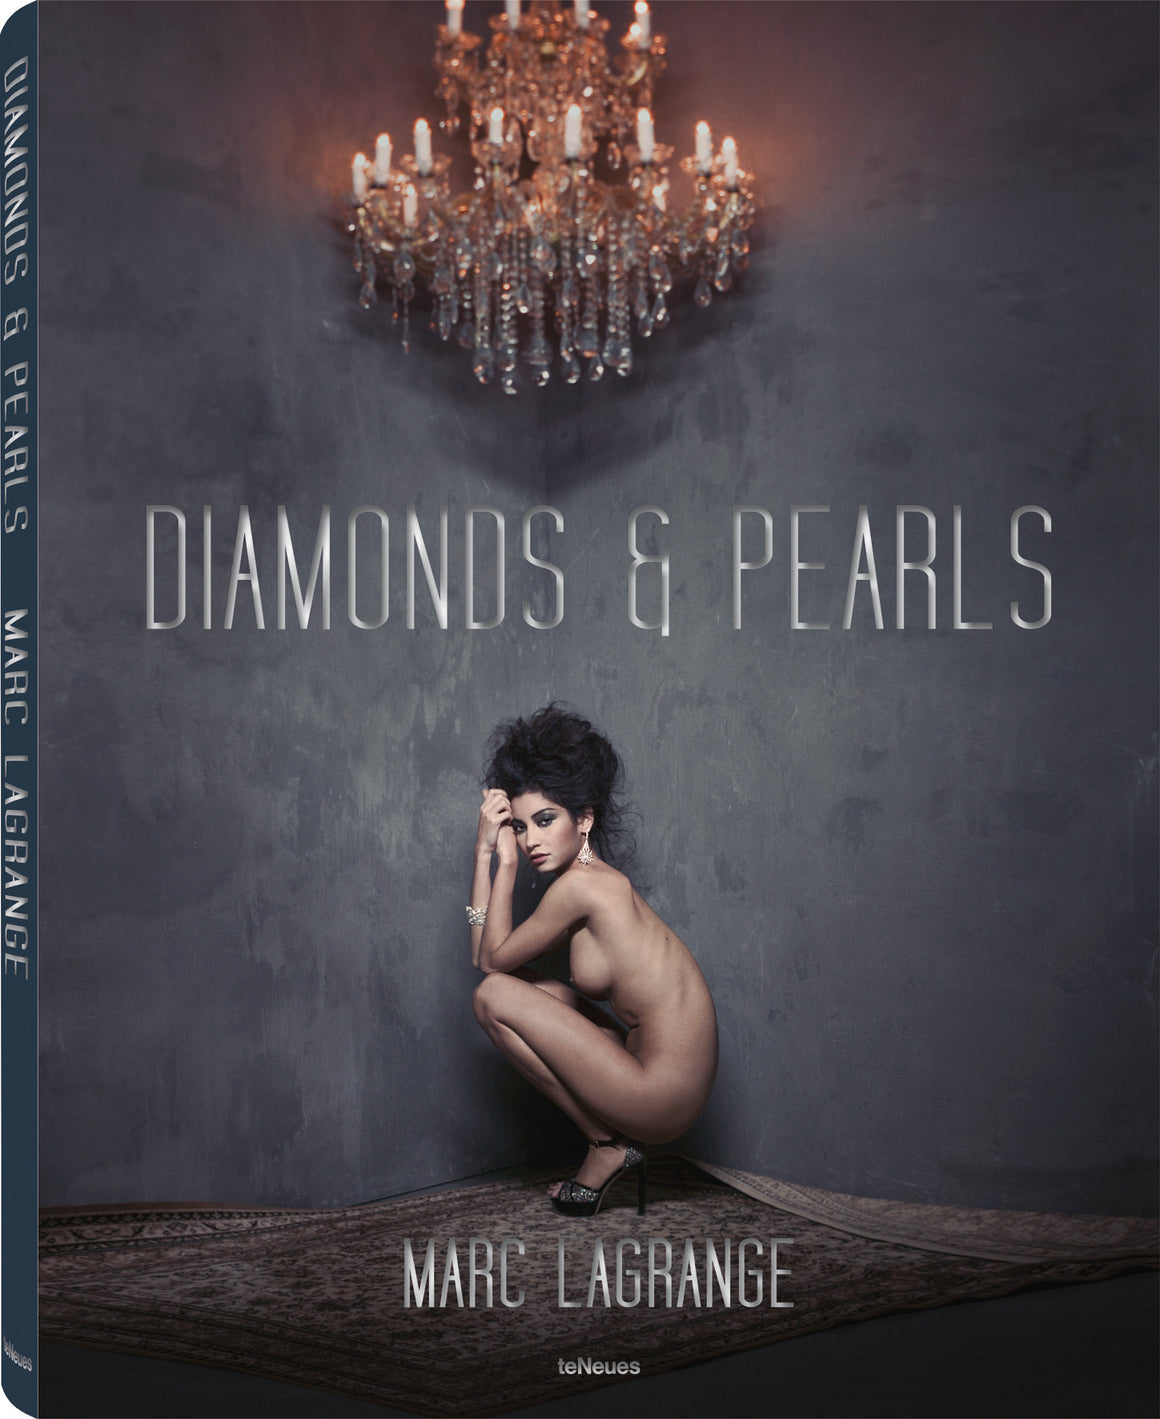 Marc Lagrange, Diamonds & Pearls